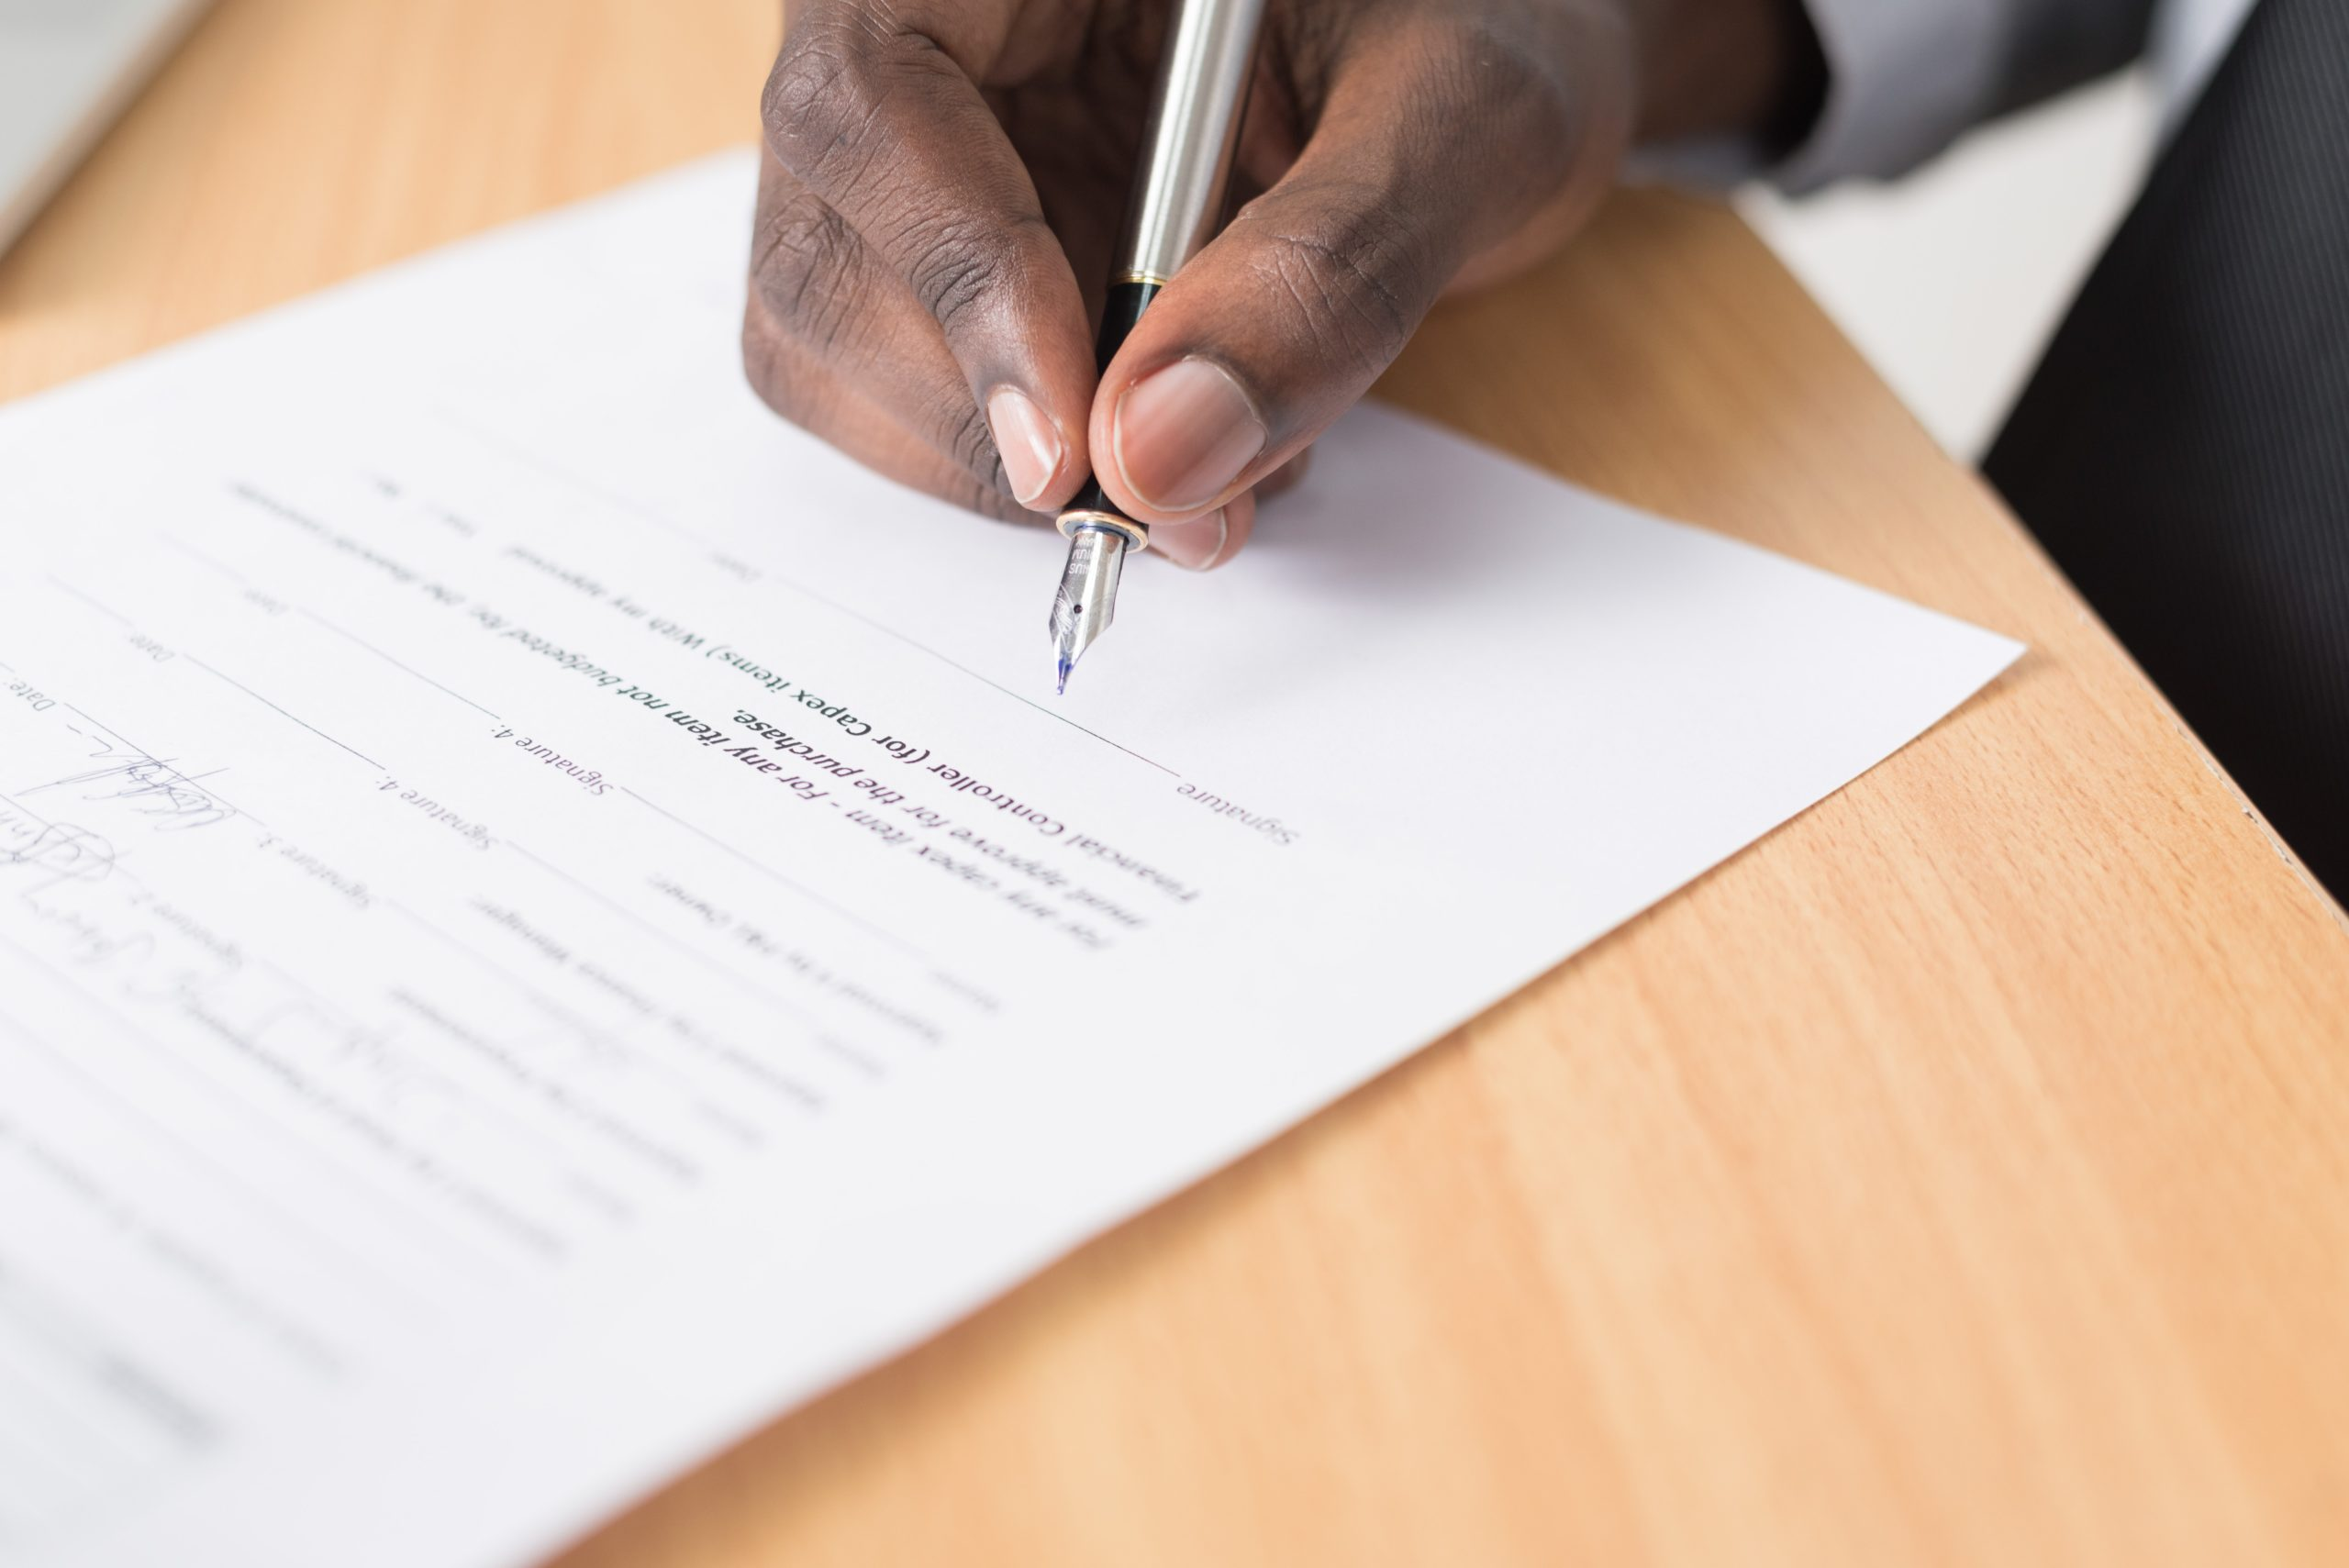 6 Reasons You Need a Contract Lawyer Before You Sign That Contract